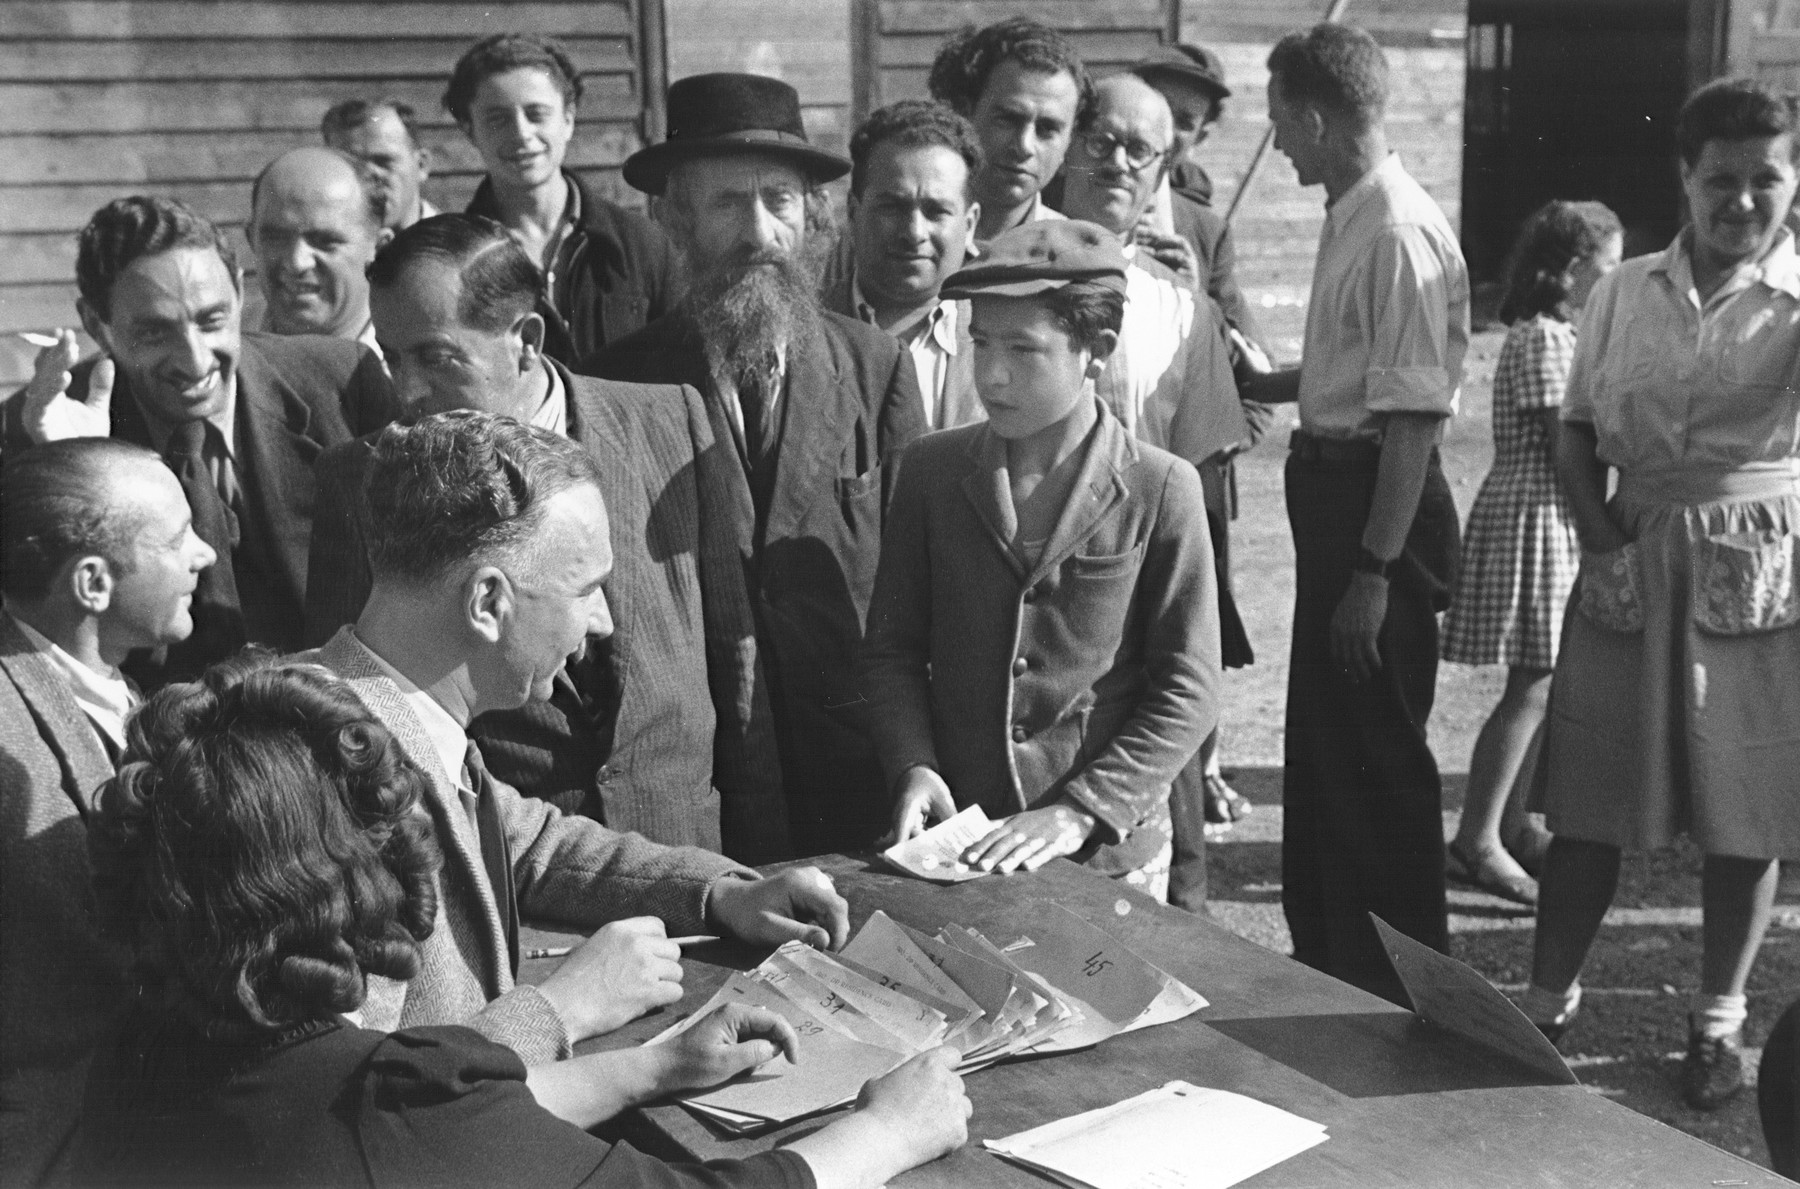 A Jewish DP child holding his identification card converses with an IRO (International Refugee Organization) official, who is seated at a table with a stack of IRO DP residence cards.